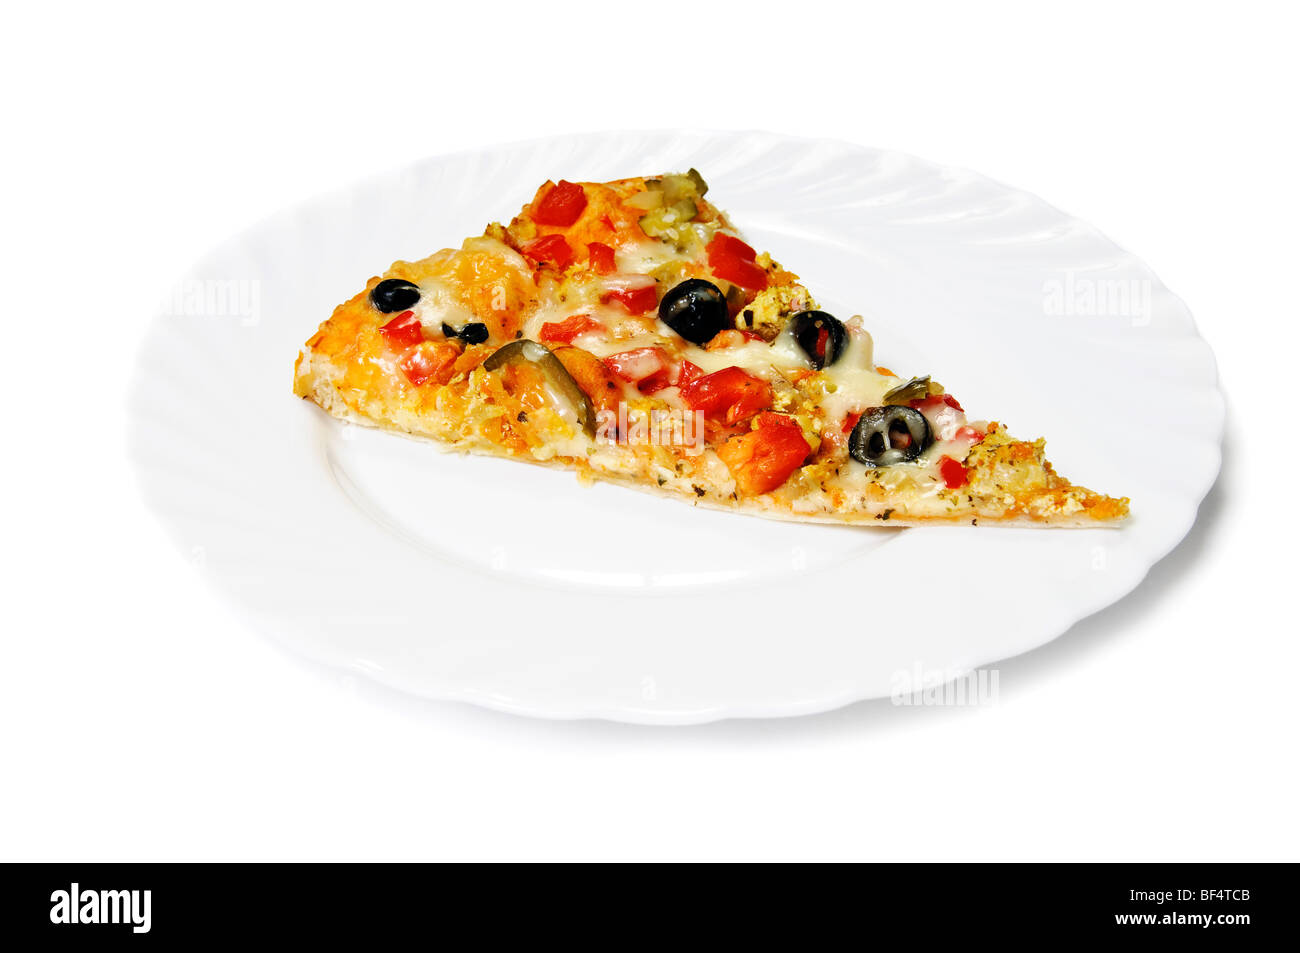 Pepperoni Pizza Stock Photos & Pepperoni Pizza Stock Images - Alamy